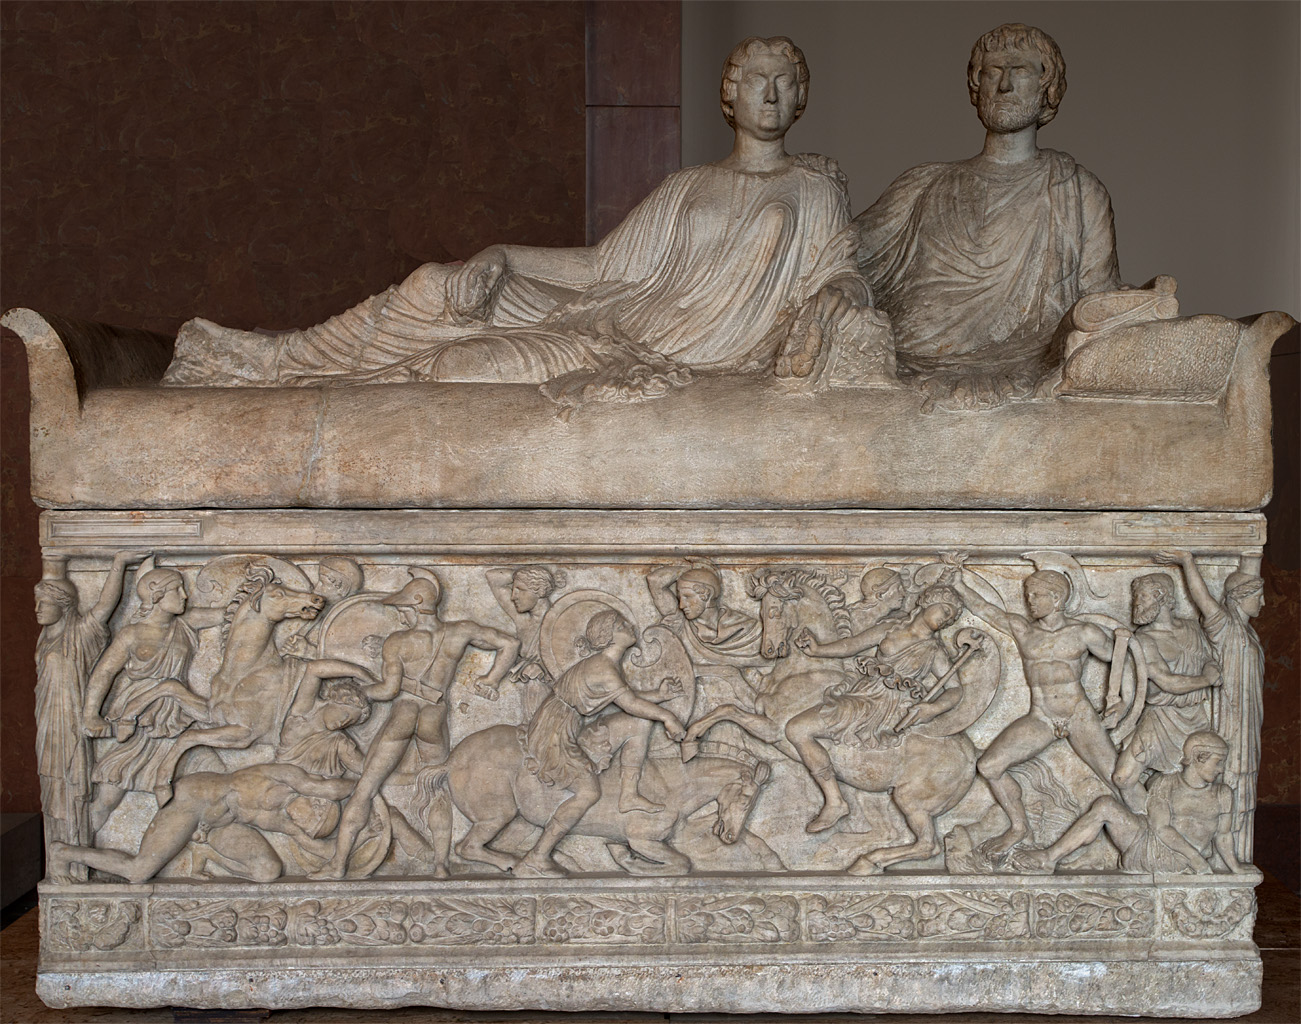 Sarcophagus of a married couple with scenes of amazonomachy. Marble. Ca. 180 CE. Inv. No. Ma 2119. Paris, Louvre Museum